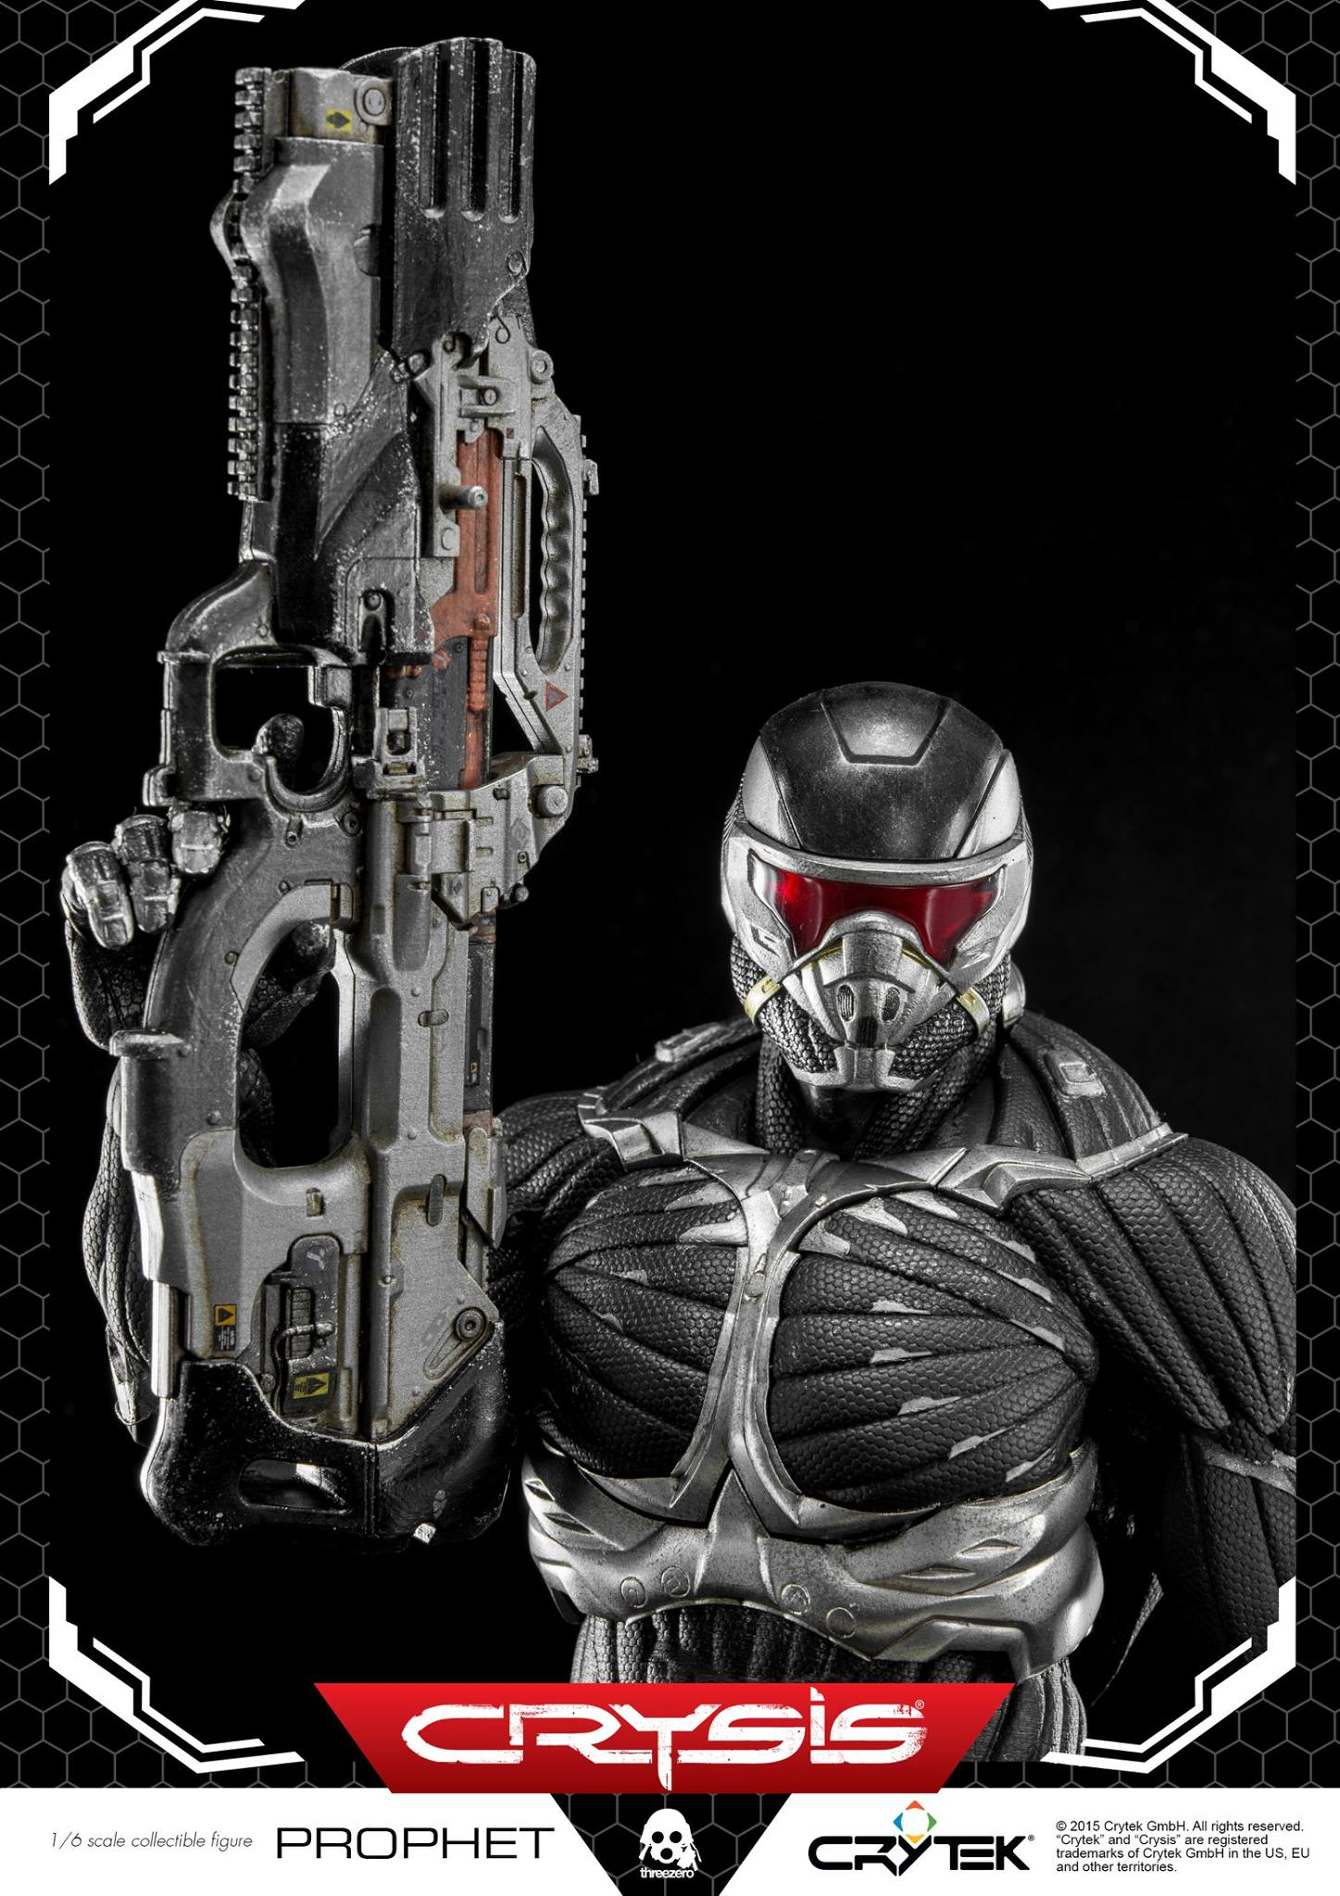 ThreeZero-Crysis-video-game-Prophet-CRY23_1340_c.jpg